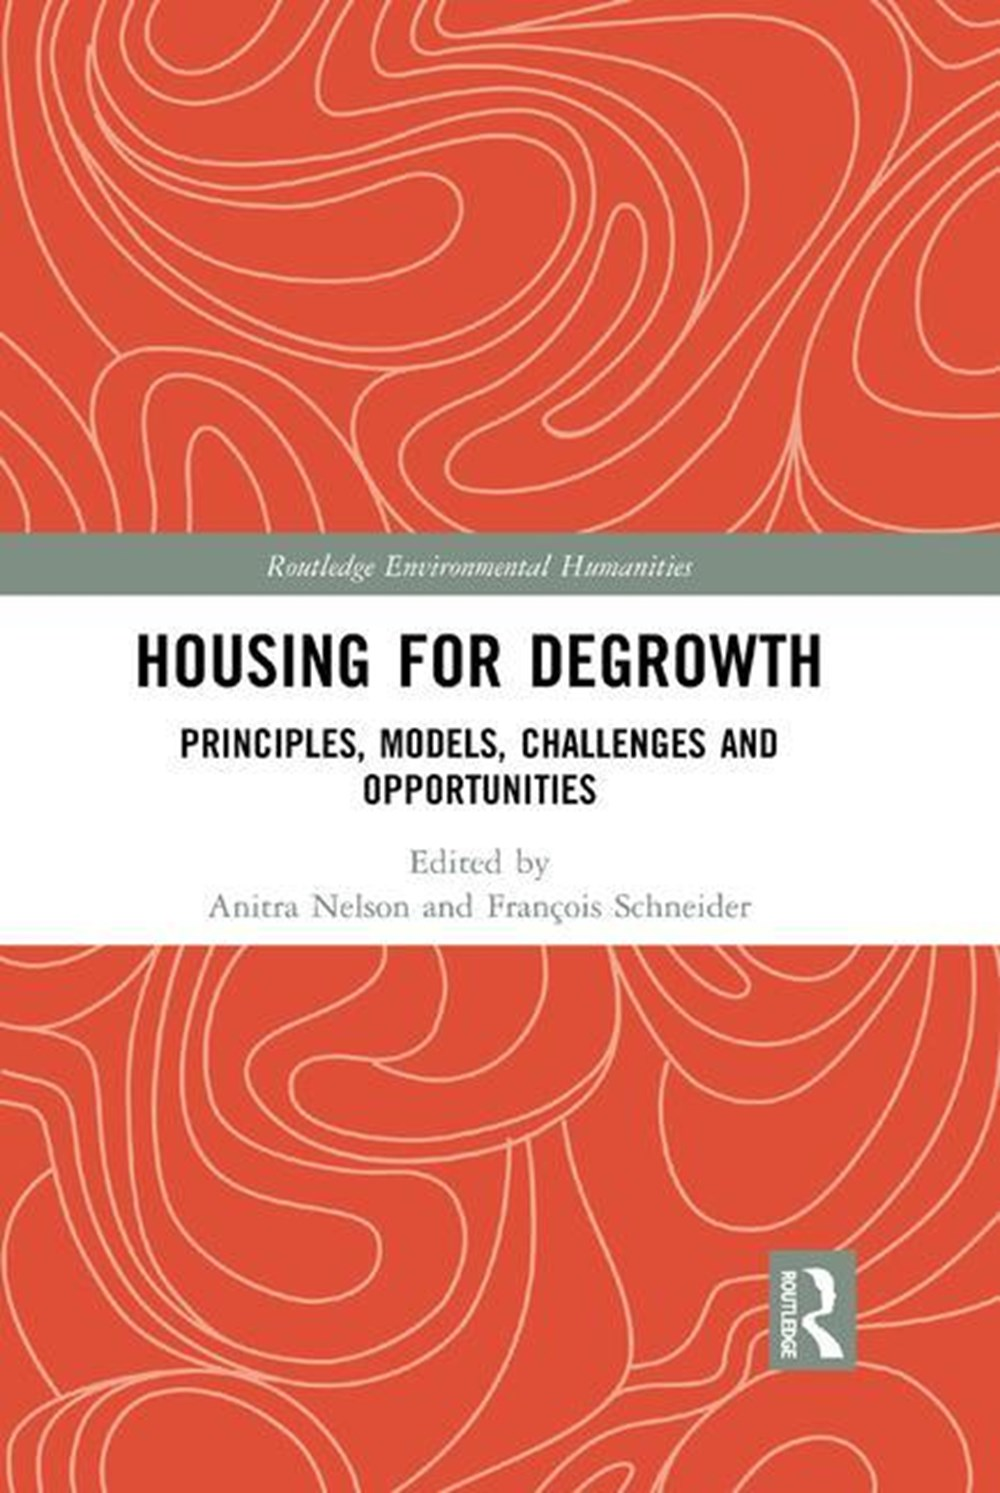 Housing for Degrowth Principles, Models, Challenges and Opportunities